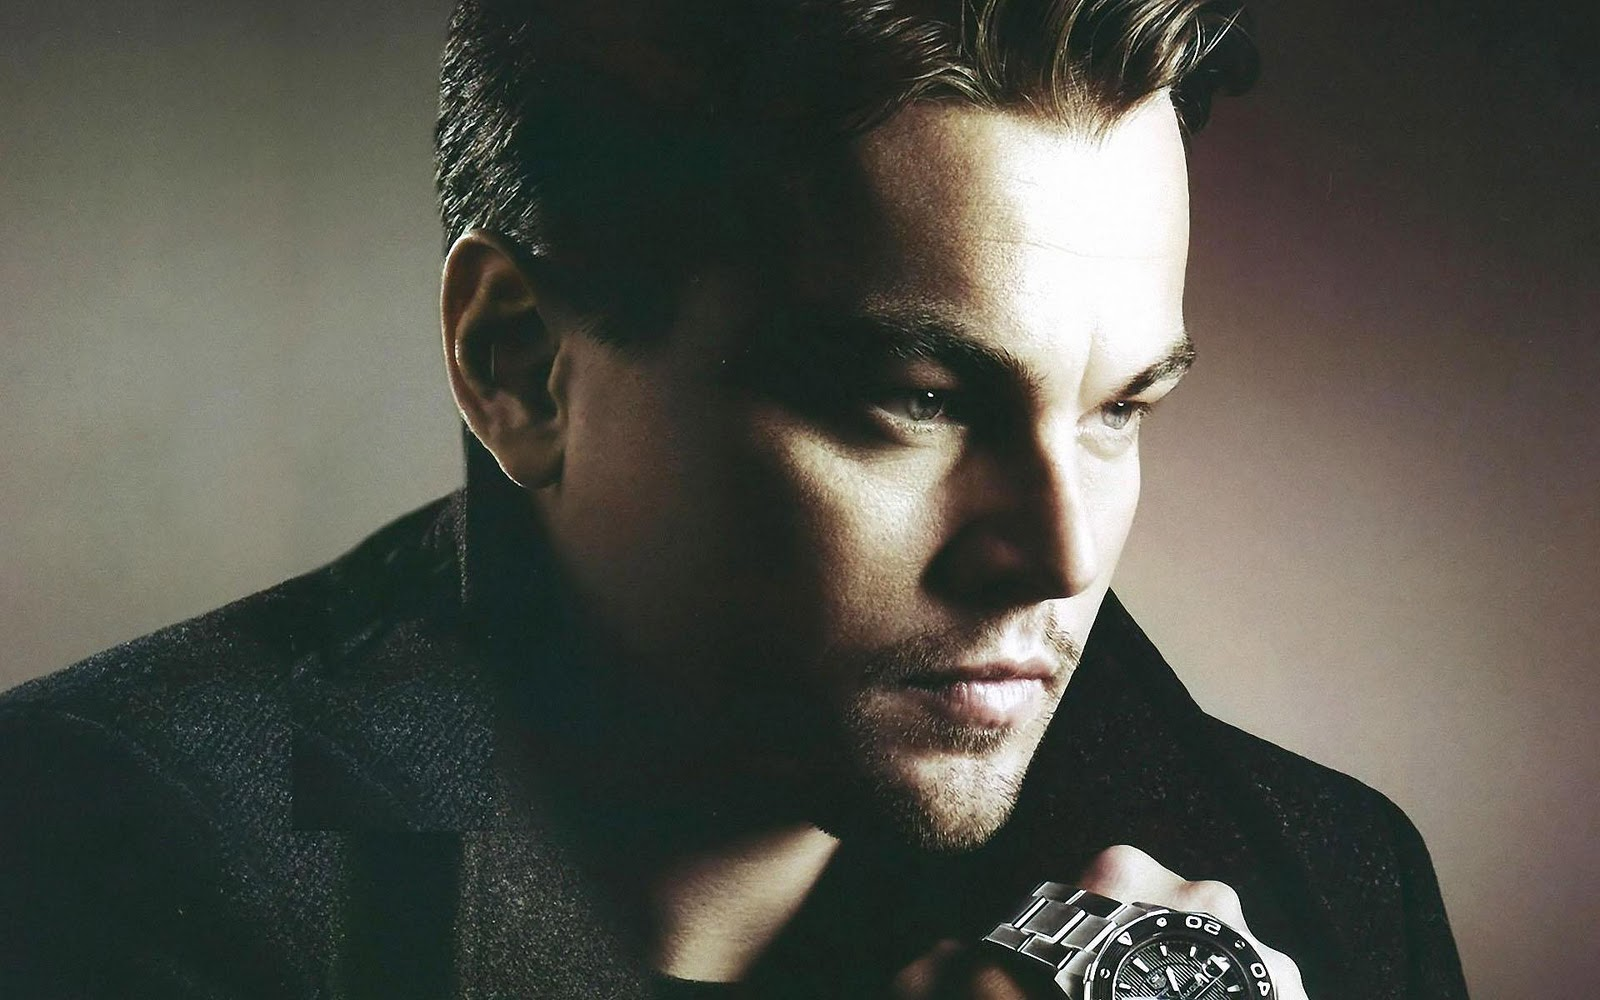 leonardo dicaprio wallpapers | full hd wallpapers 2015